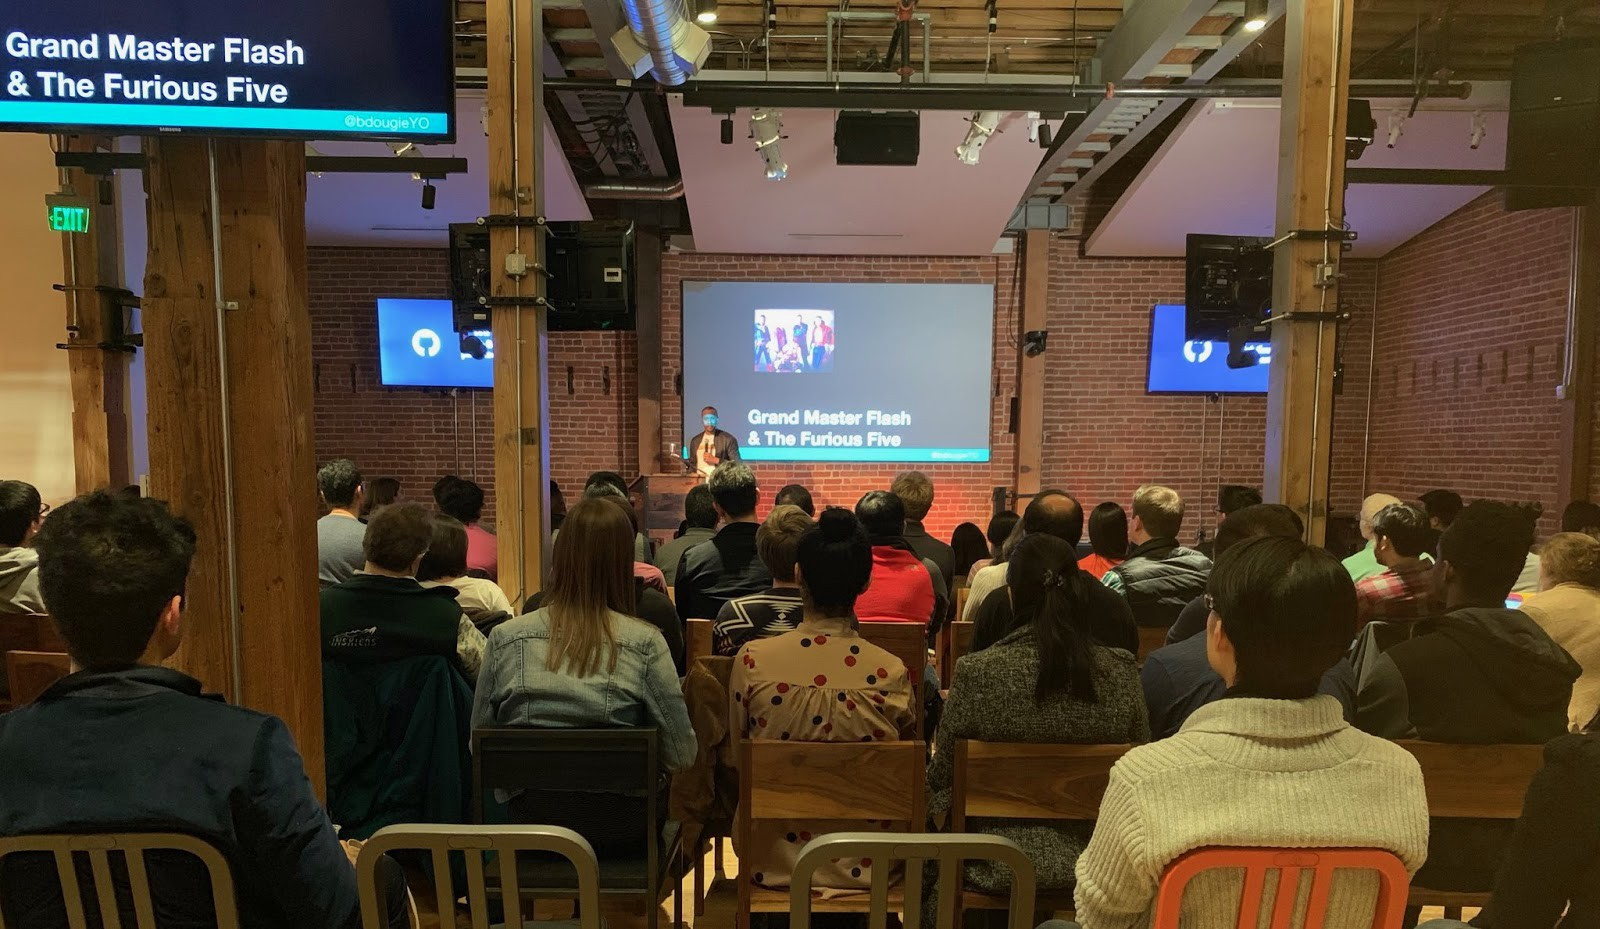 /devstories-github-hq-and-officially-oversubscribed-crowdfund-35cee41c07a8 feature image